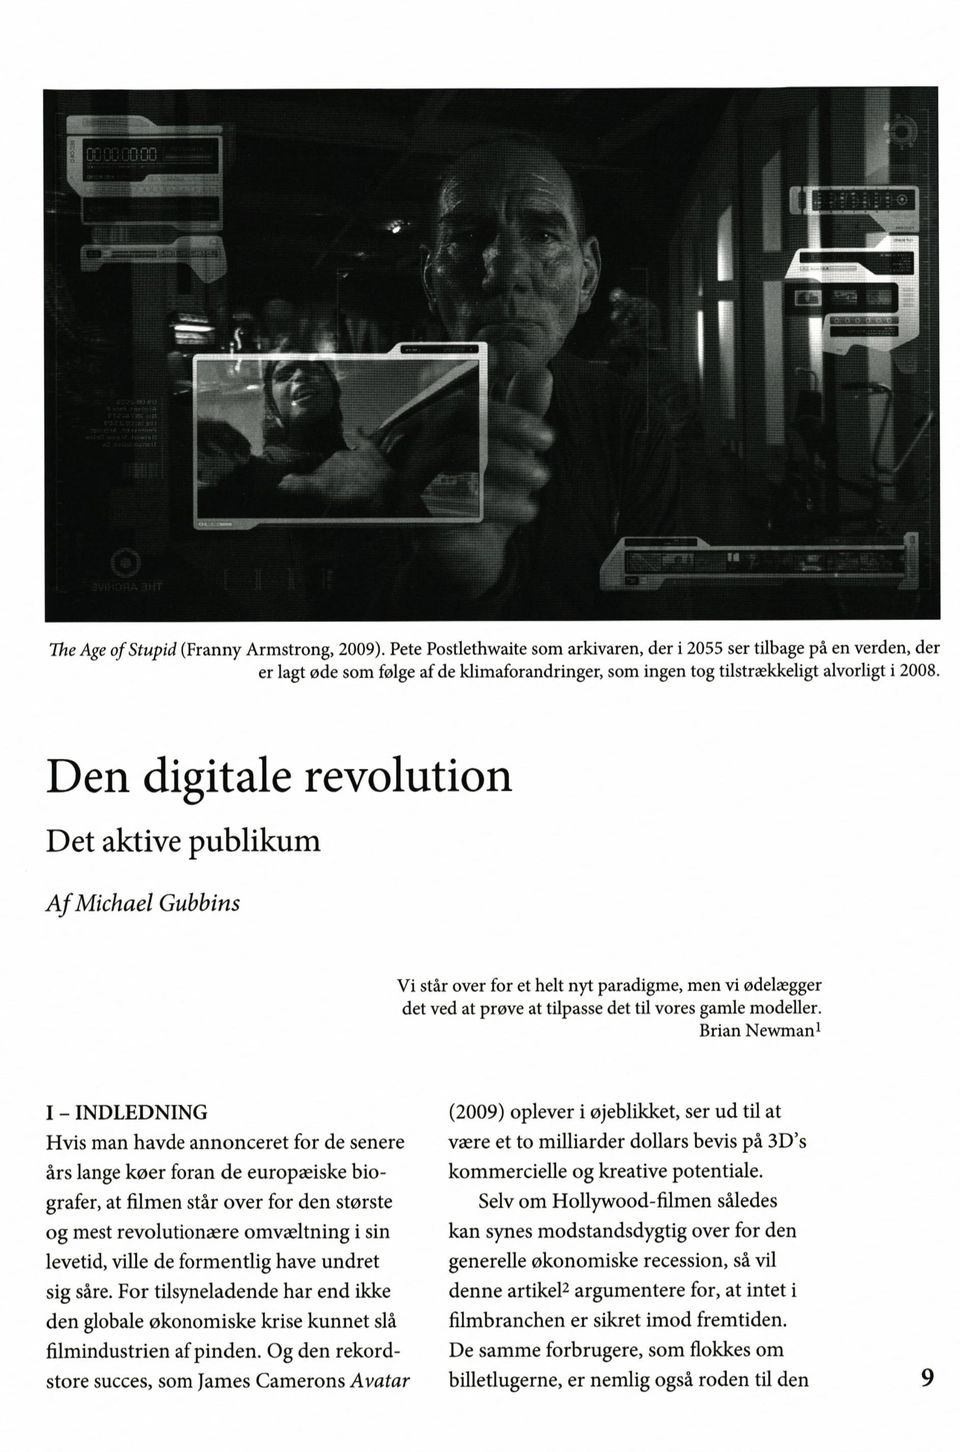 Den digitale revolution Det aktive publikum A f Michael Gubbins Vi står over for et helt nyt paradigme, men vi ødelægger det ved at prøve at tilpasse det til vores gamle modeller.